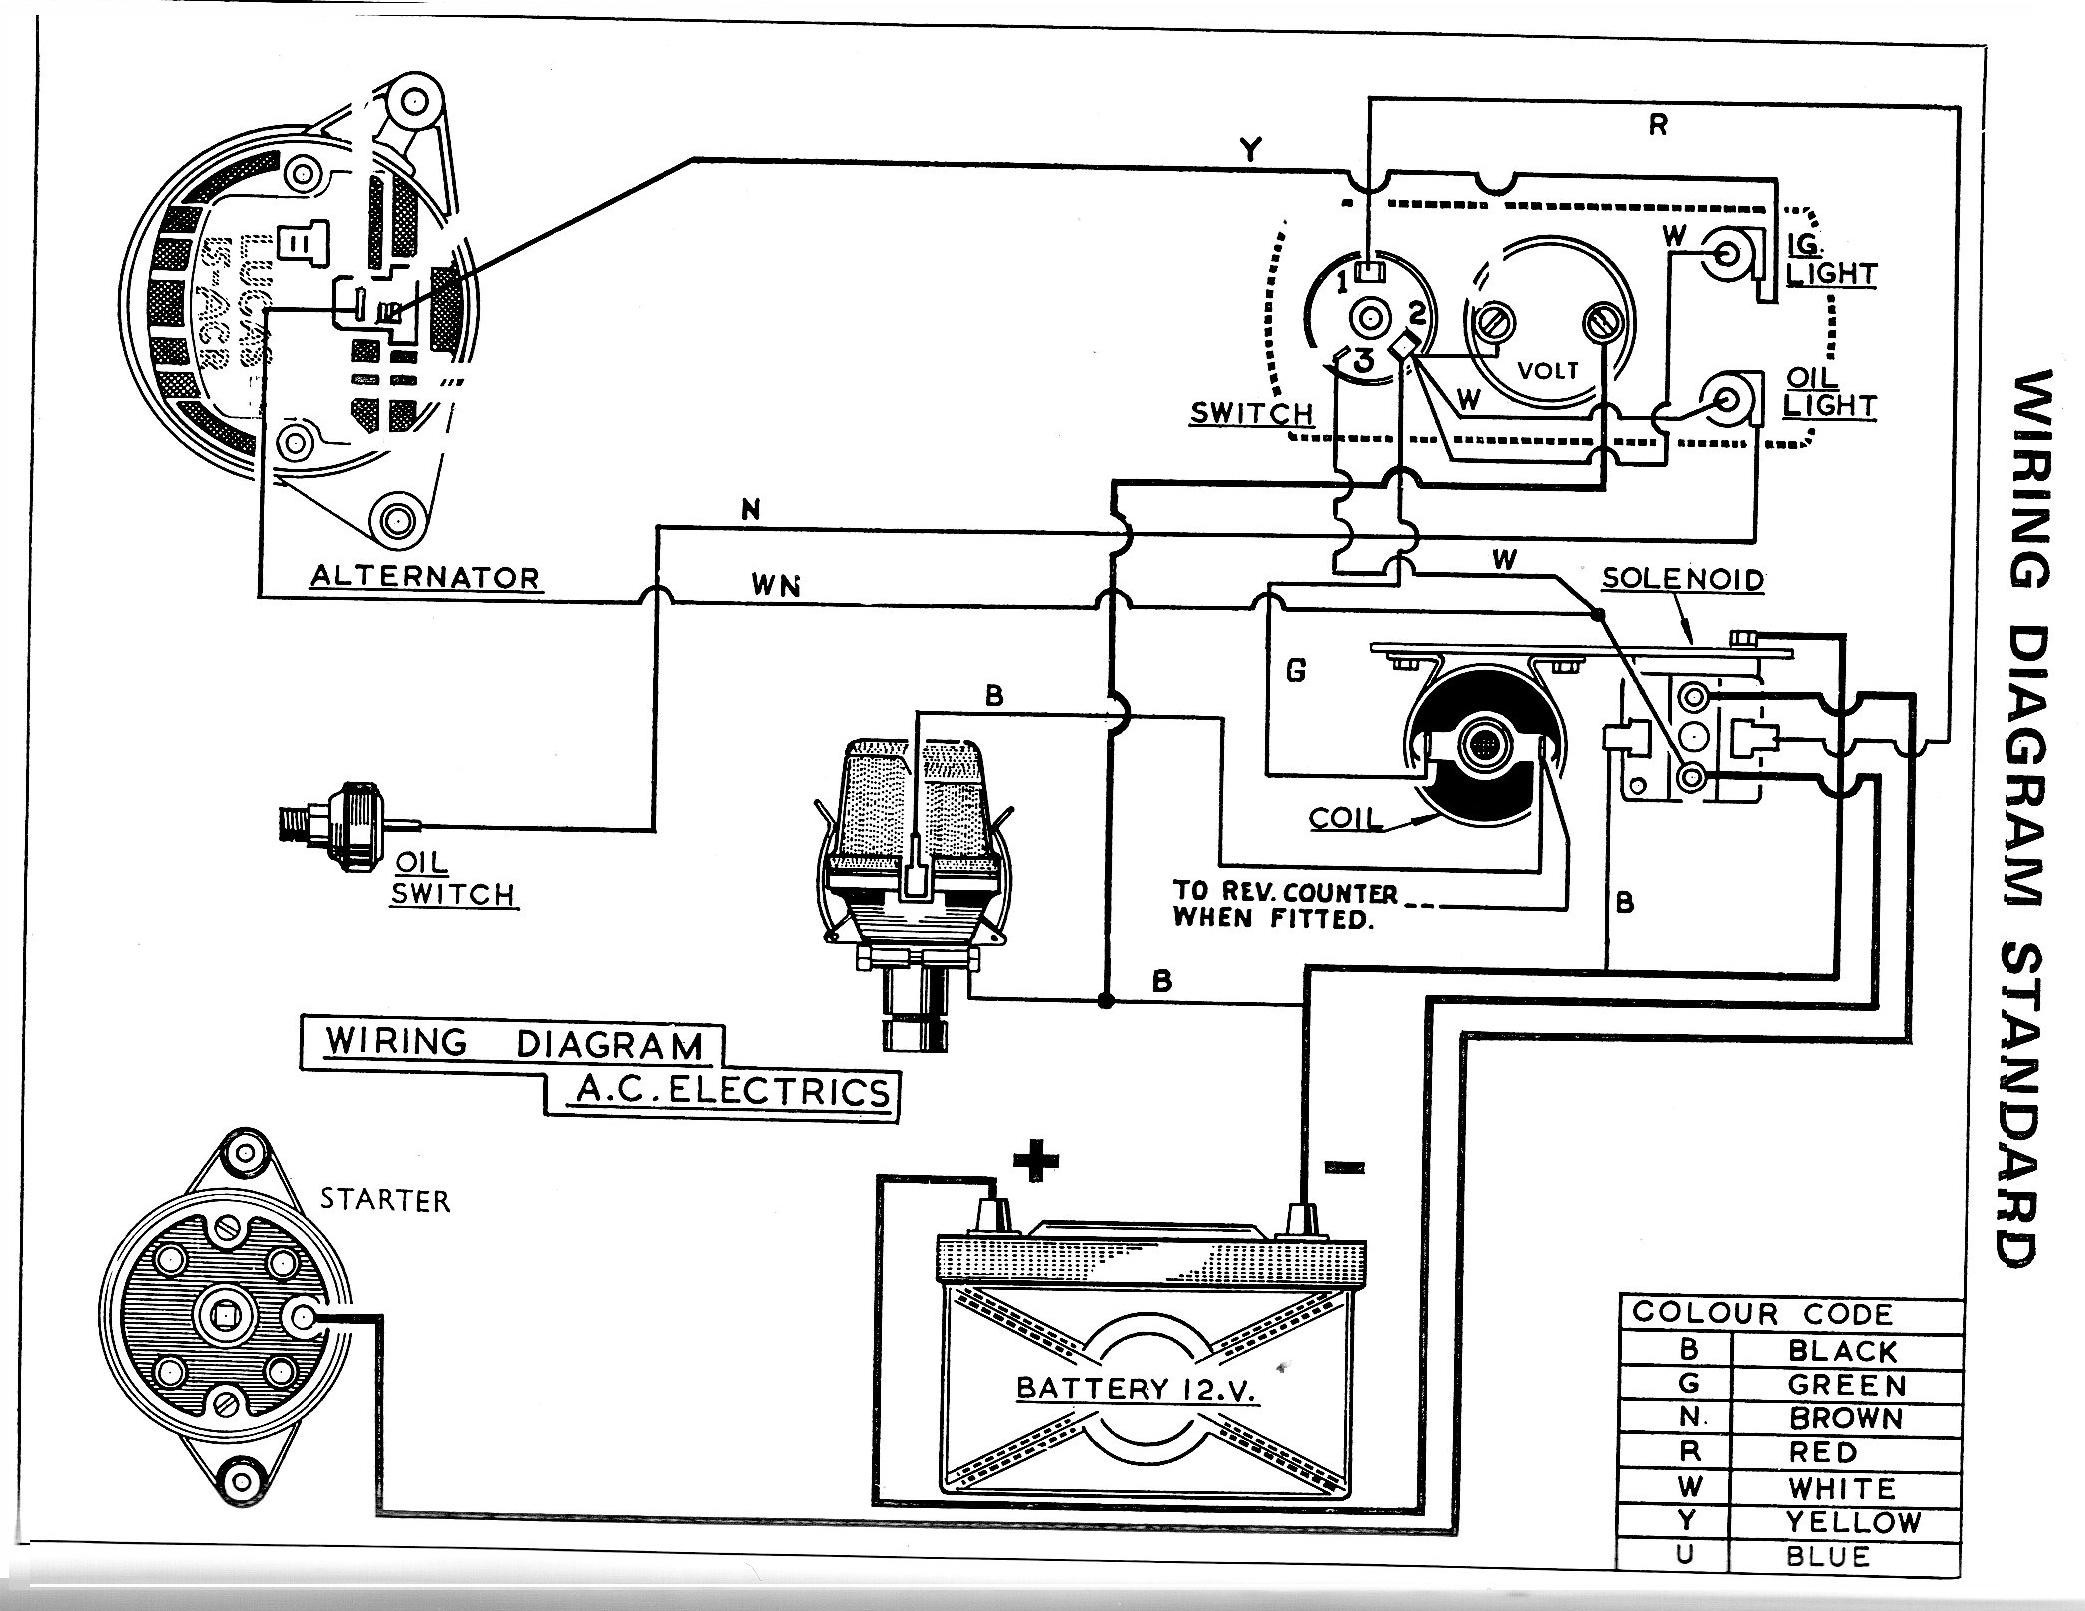 2001 Ford Escape Ignition Coil Wiring Diagram